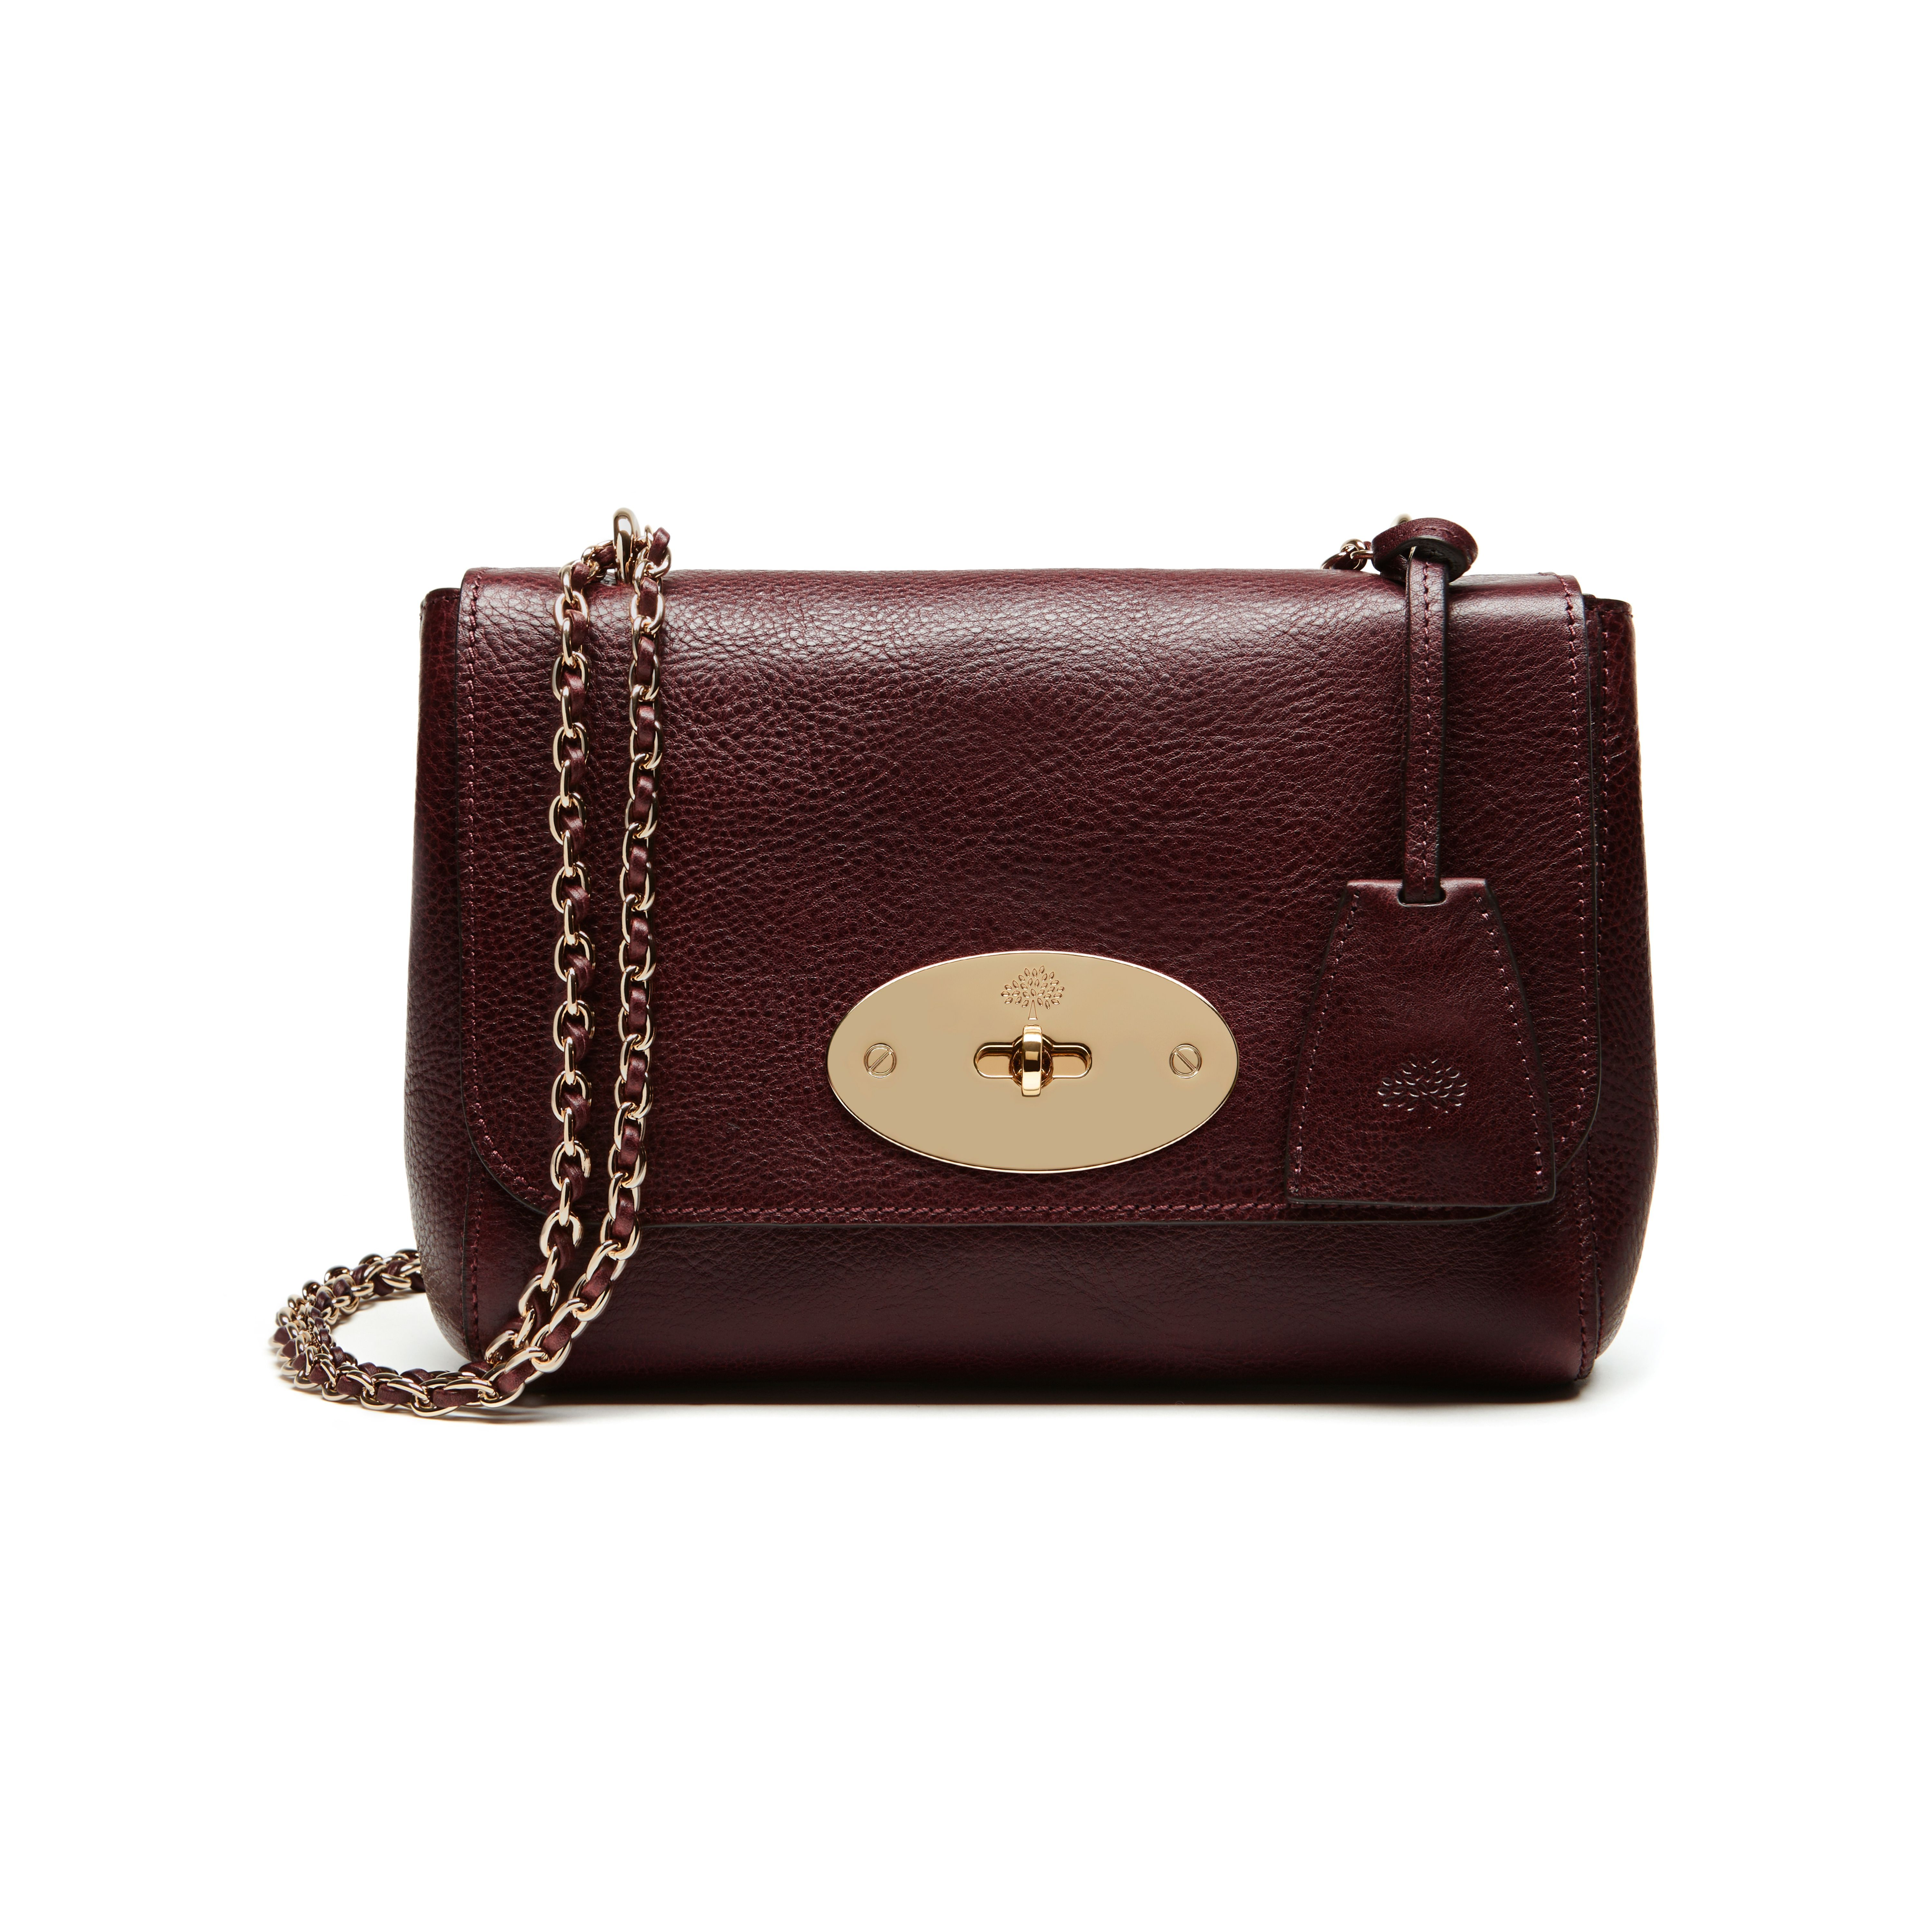 936a9b10f5 Mulberry Style Signatures - Lily in Oxblood Deep Embossed Croc Print ...